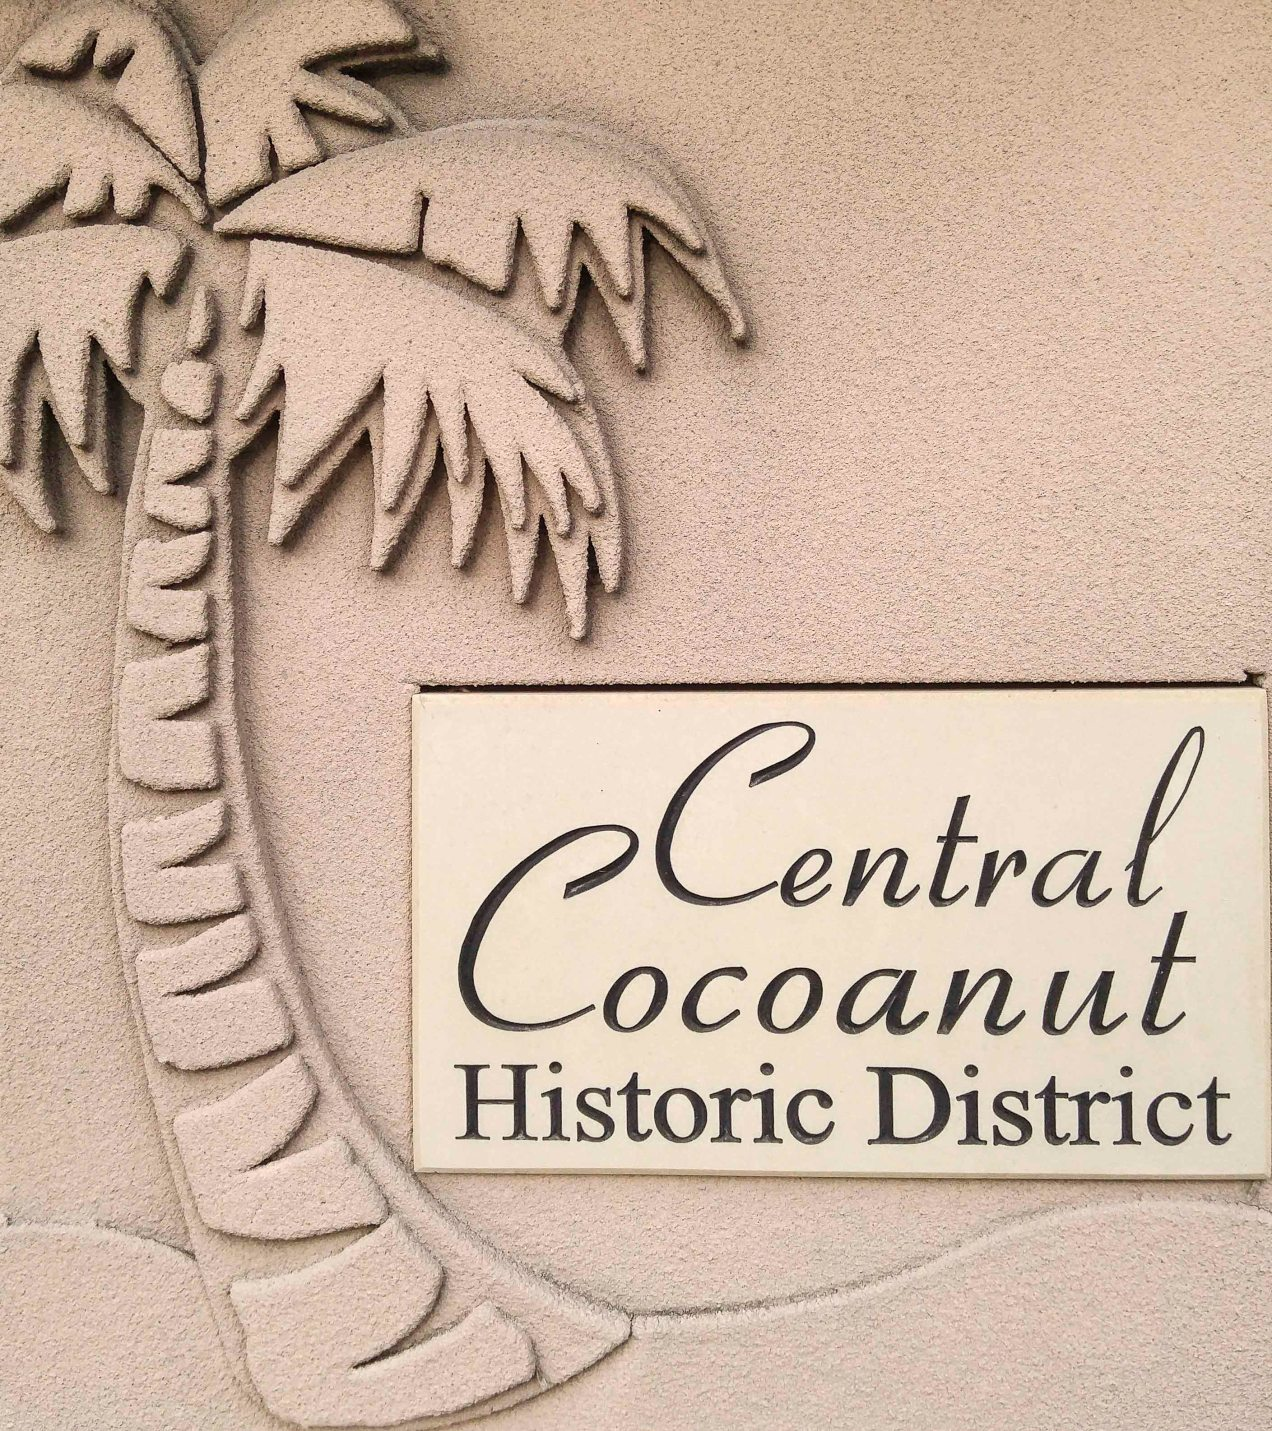 Centra-Cocoanut-Historic-District, Sarasota, Florida